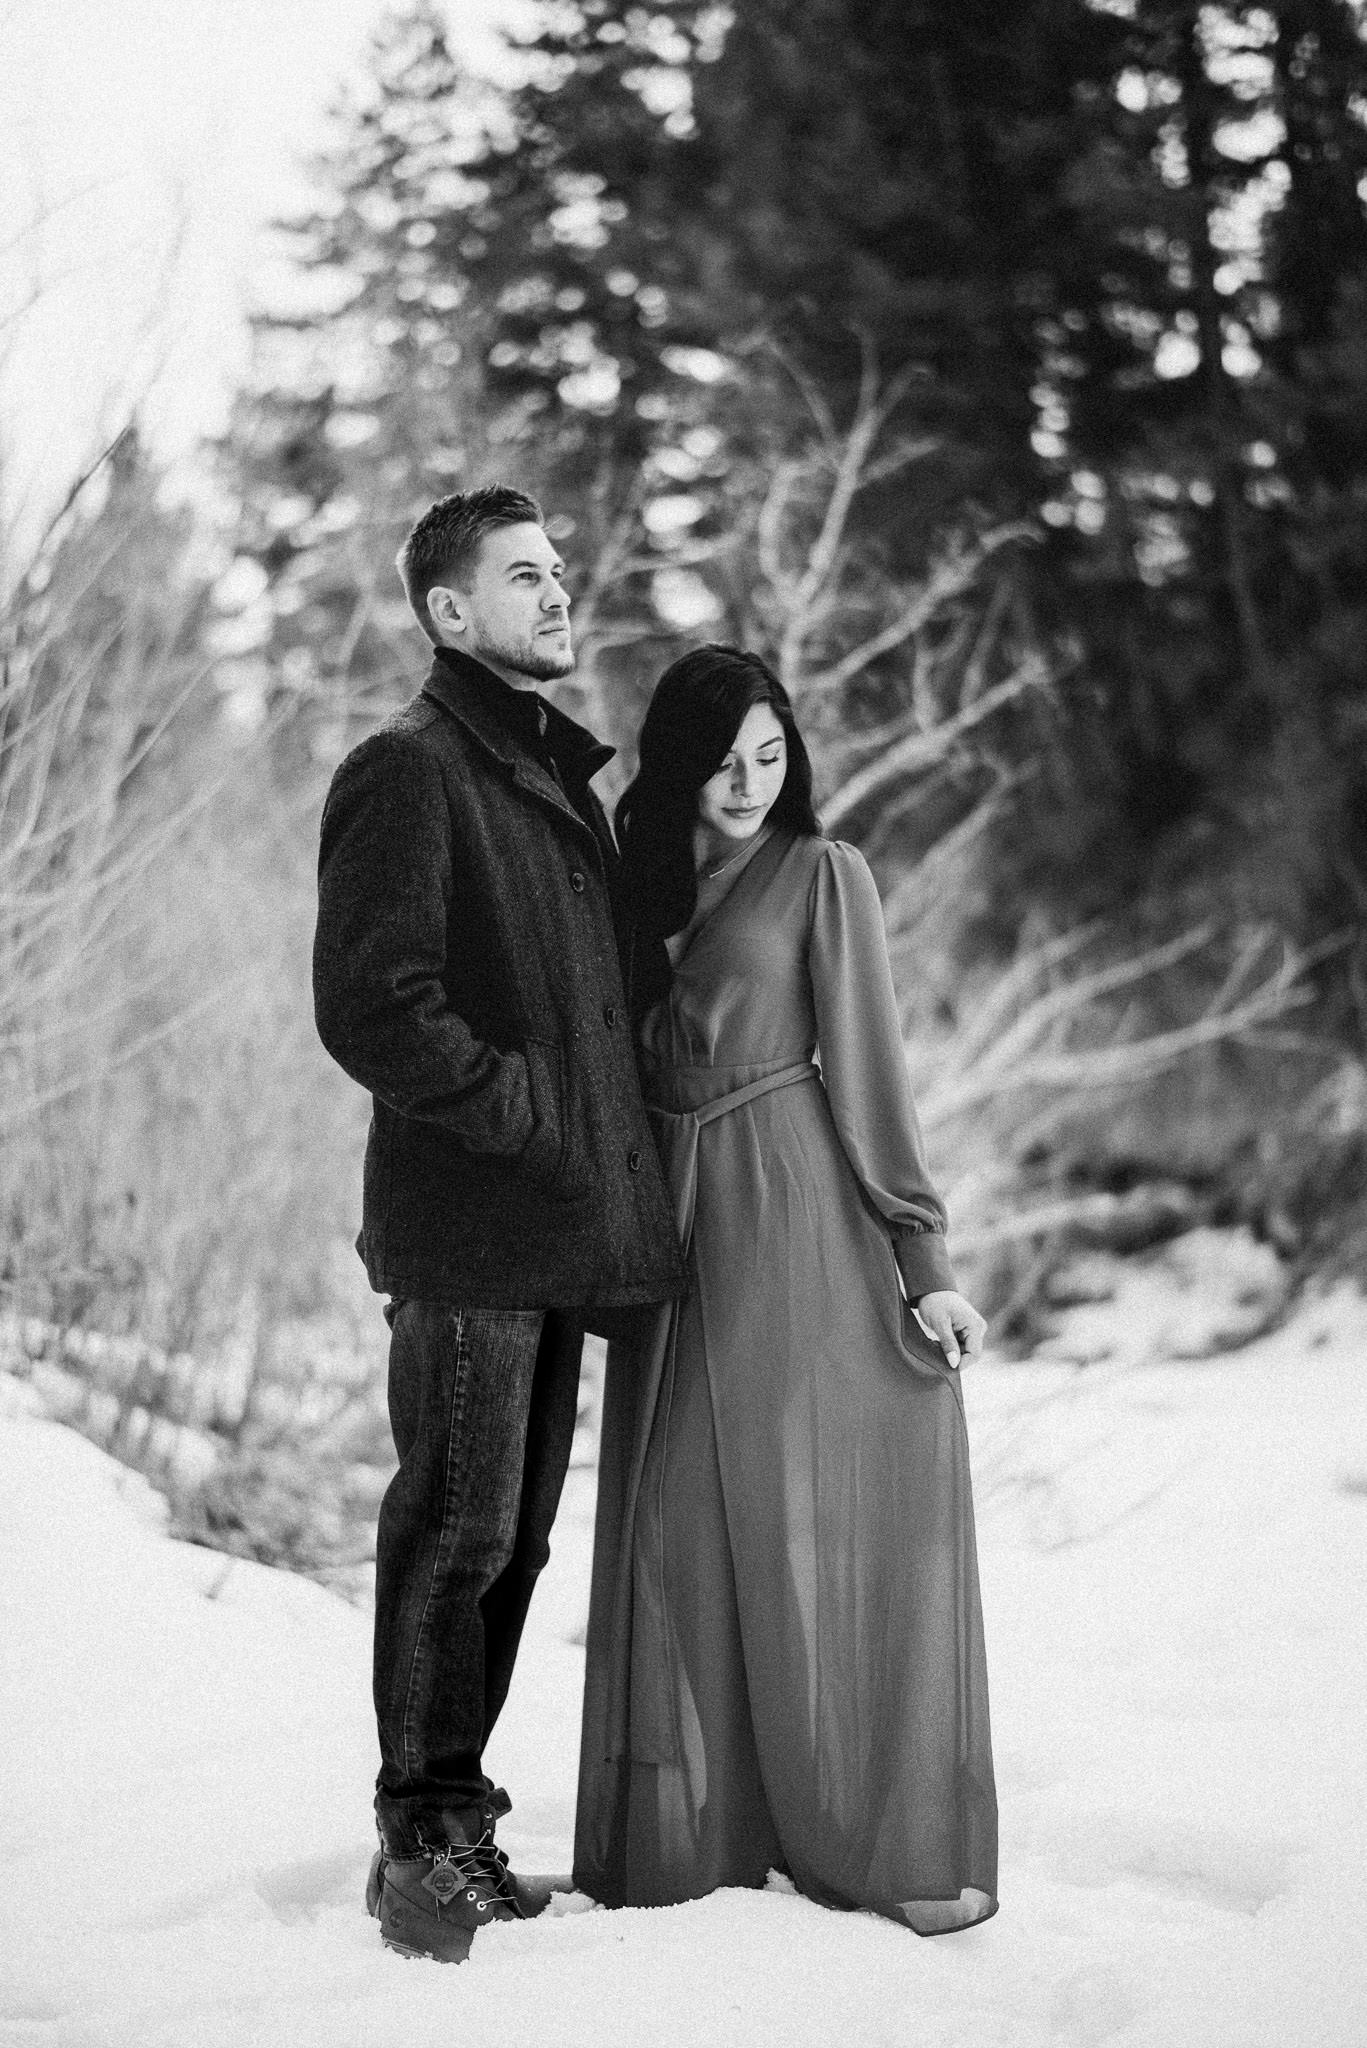 sandra-ryan-colorado-winter-snow-engagement-couples-valentines-red-houston-photographer-sm-7.jpg